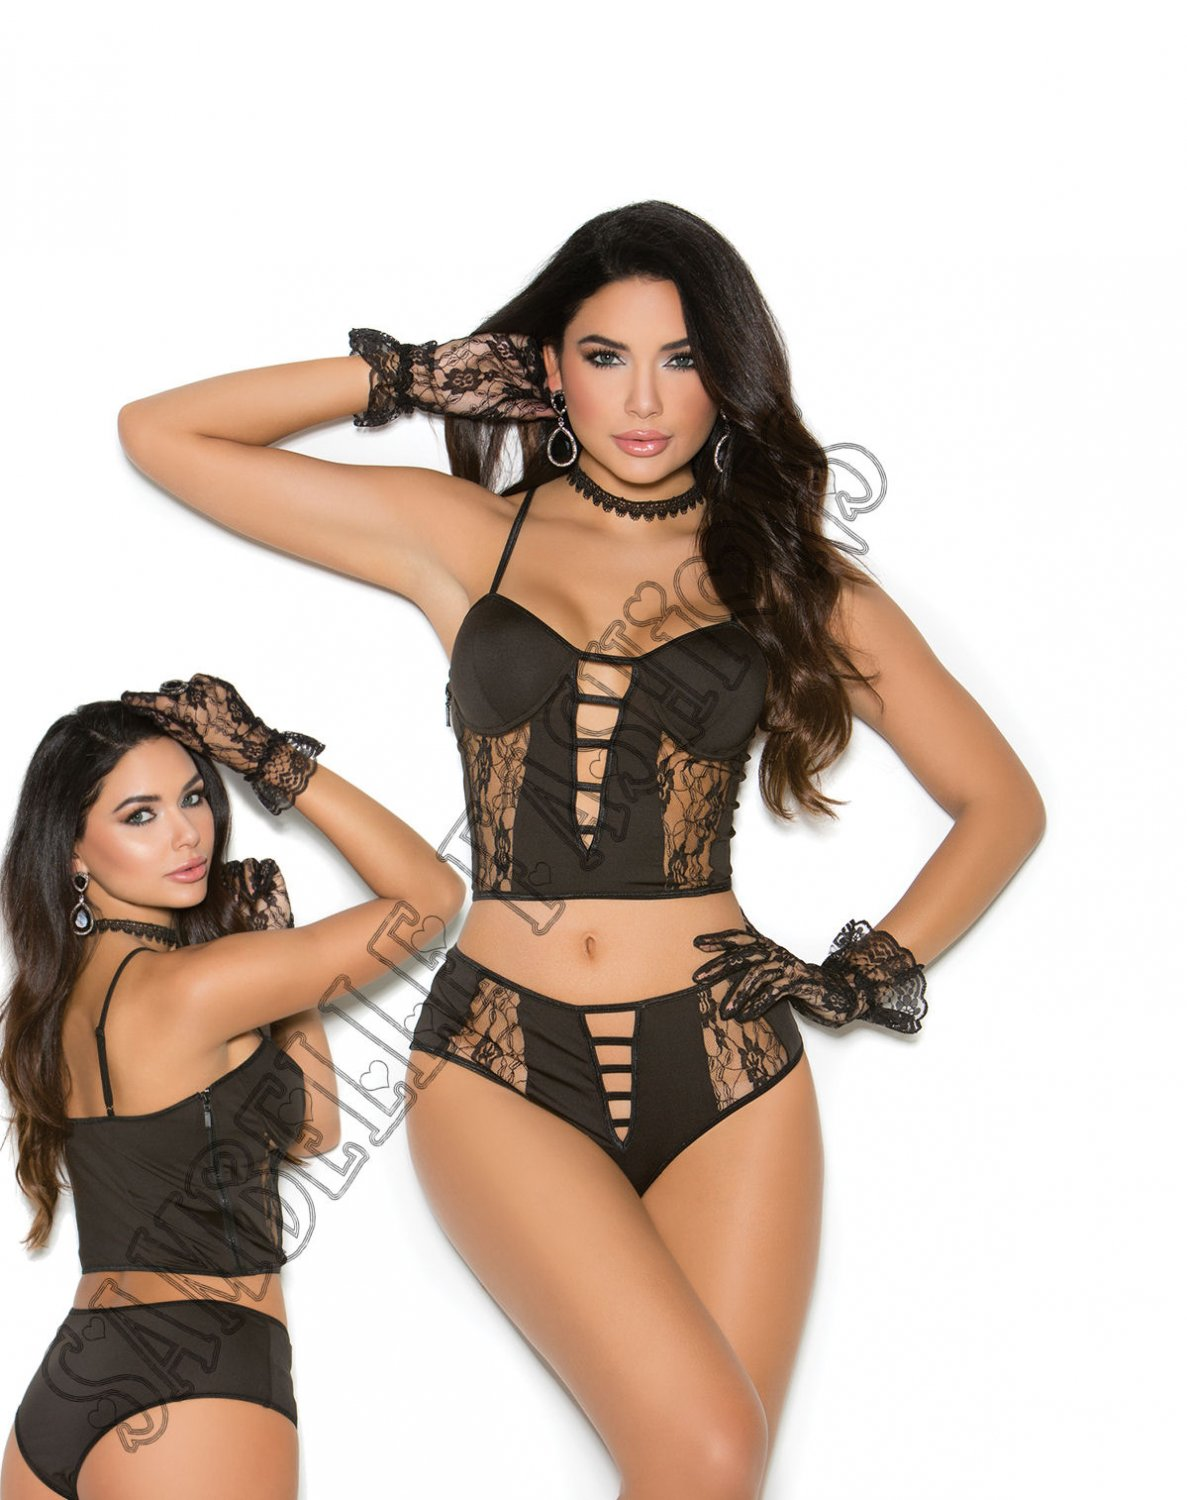 3pc Black Underwire Bralette w/ Lace Inserts, Lace Gloves & Matching Booty Shorts  - Small